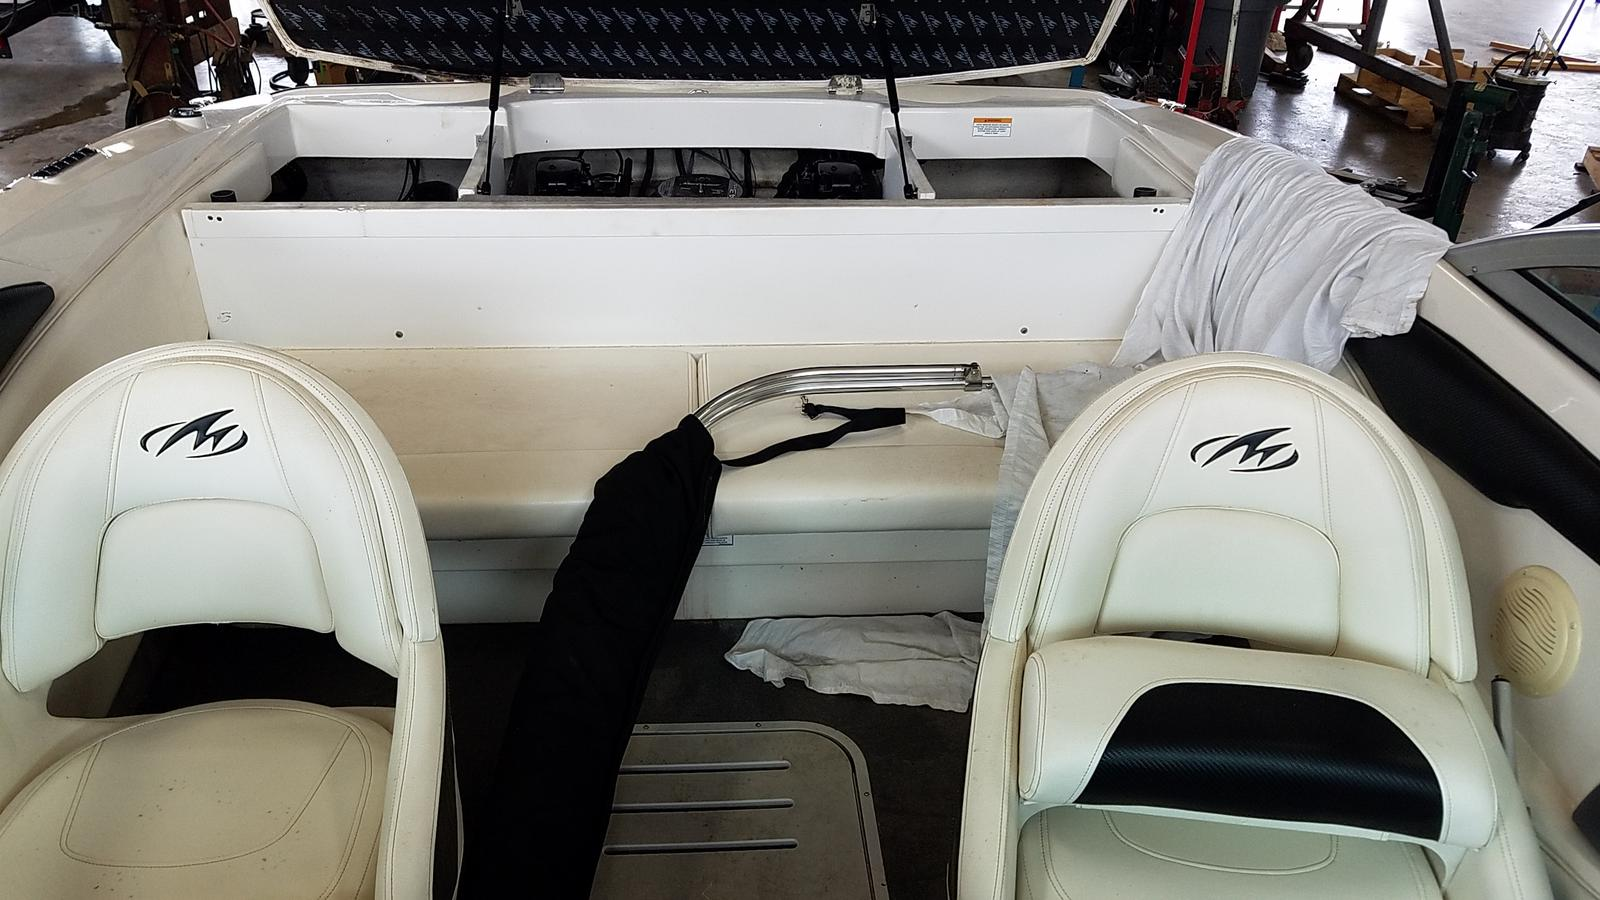 2013 Monterey boat for sale, model of the boat is Sport Boat 184FS & Image # 5 of 10